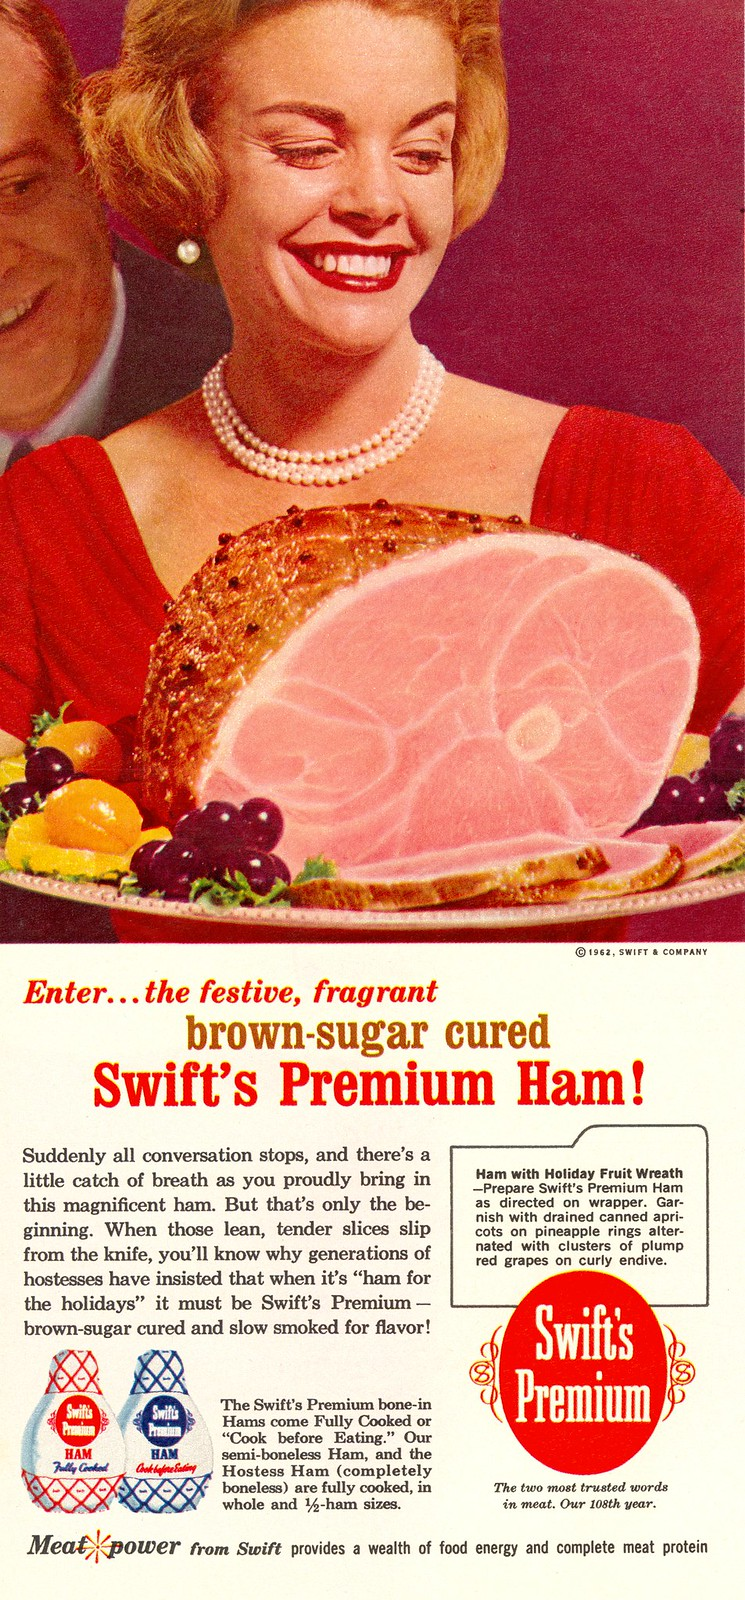 Swift's Premium - published in Woman's Day - December 1962